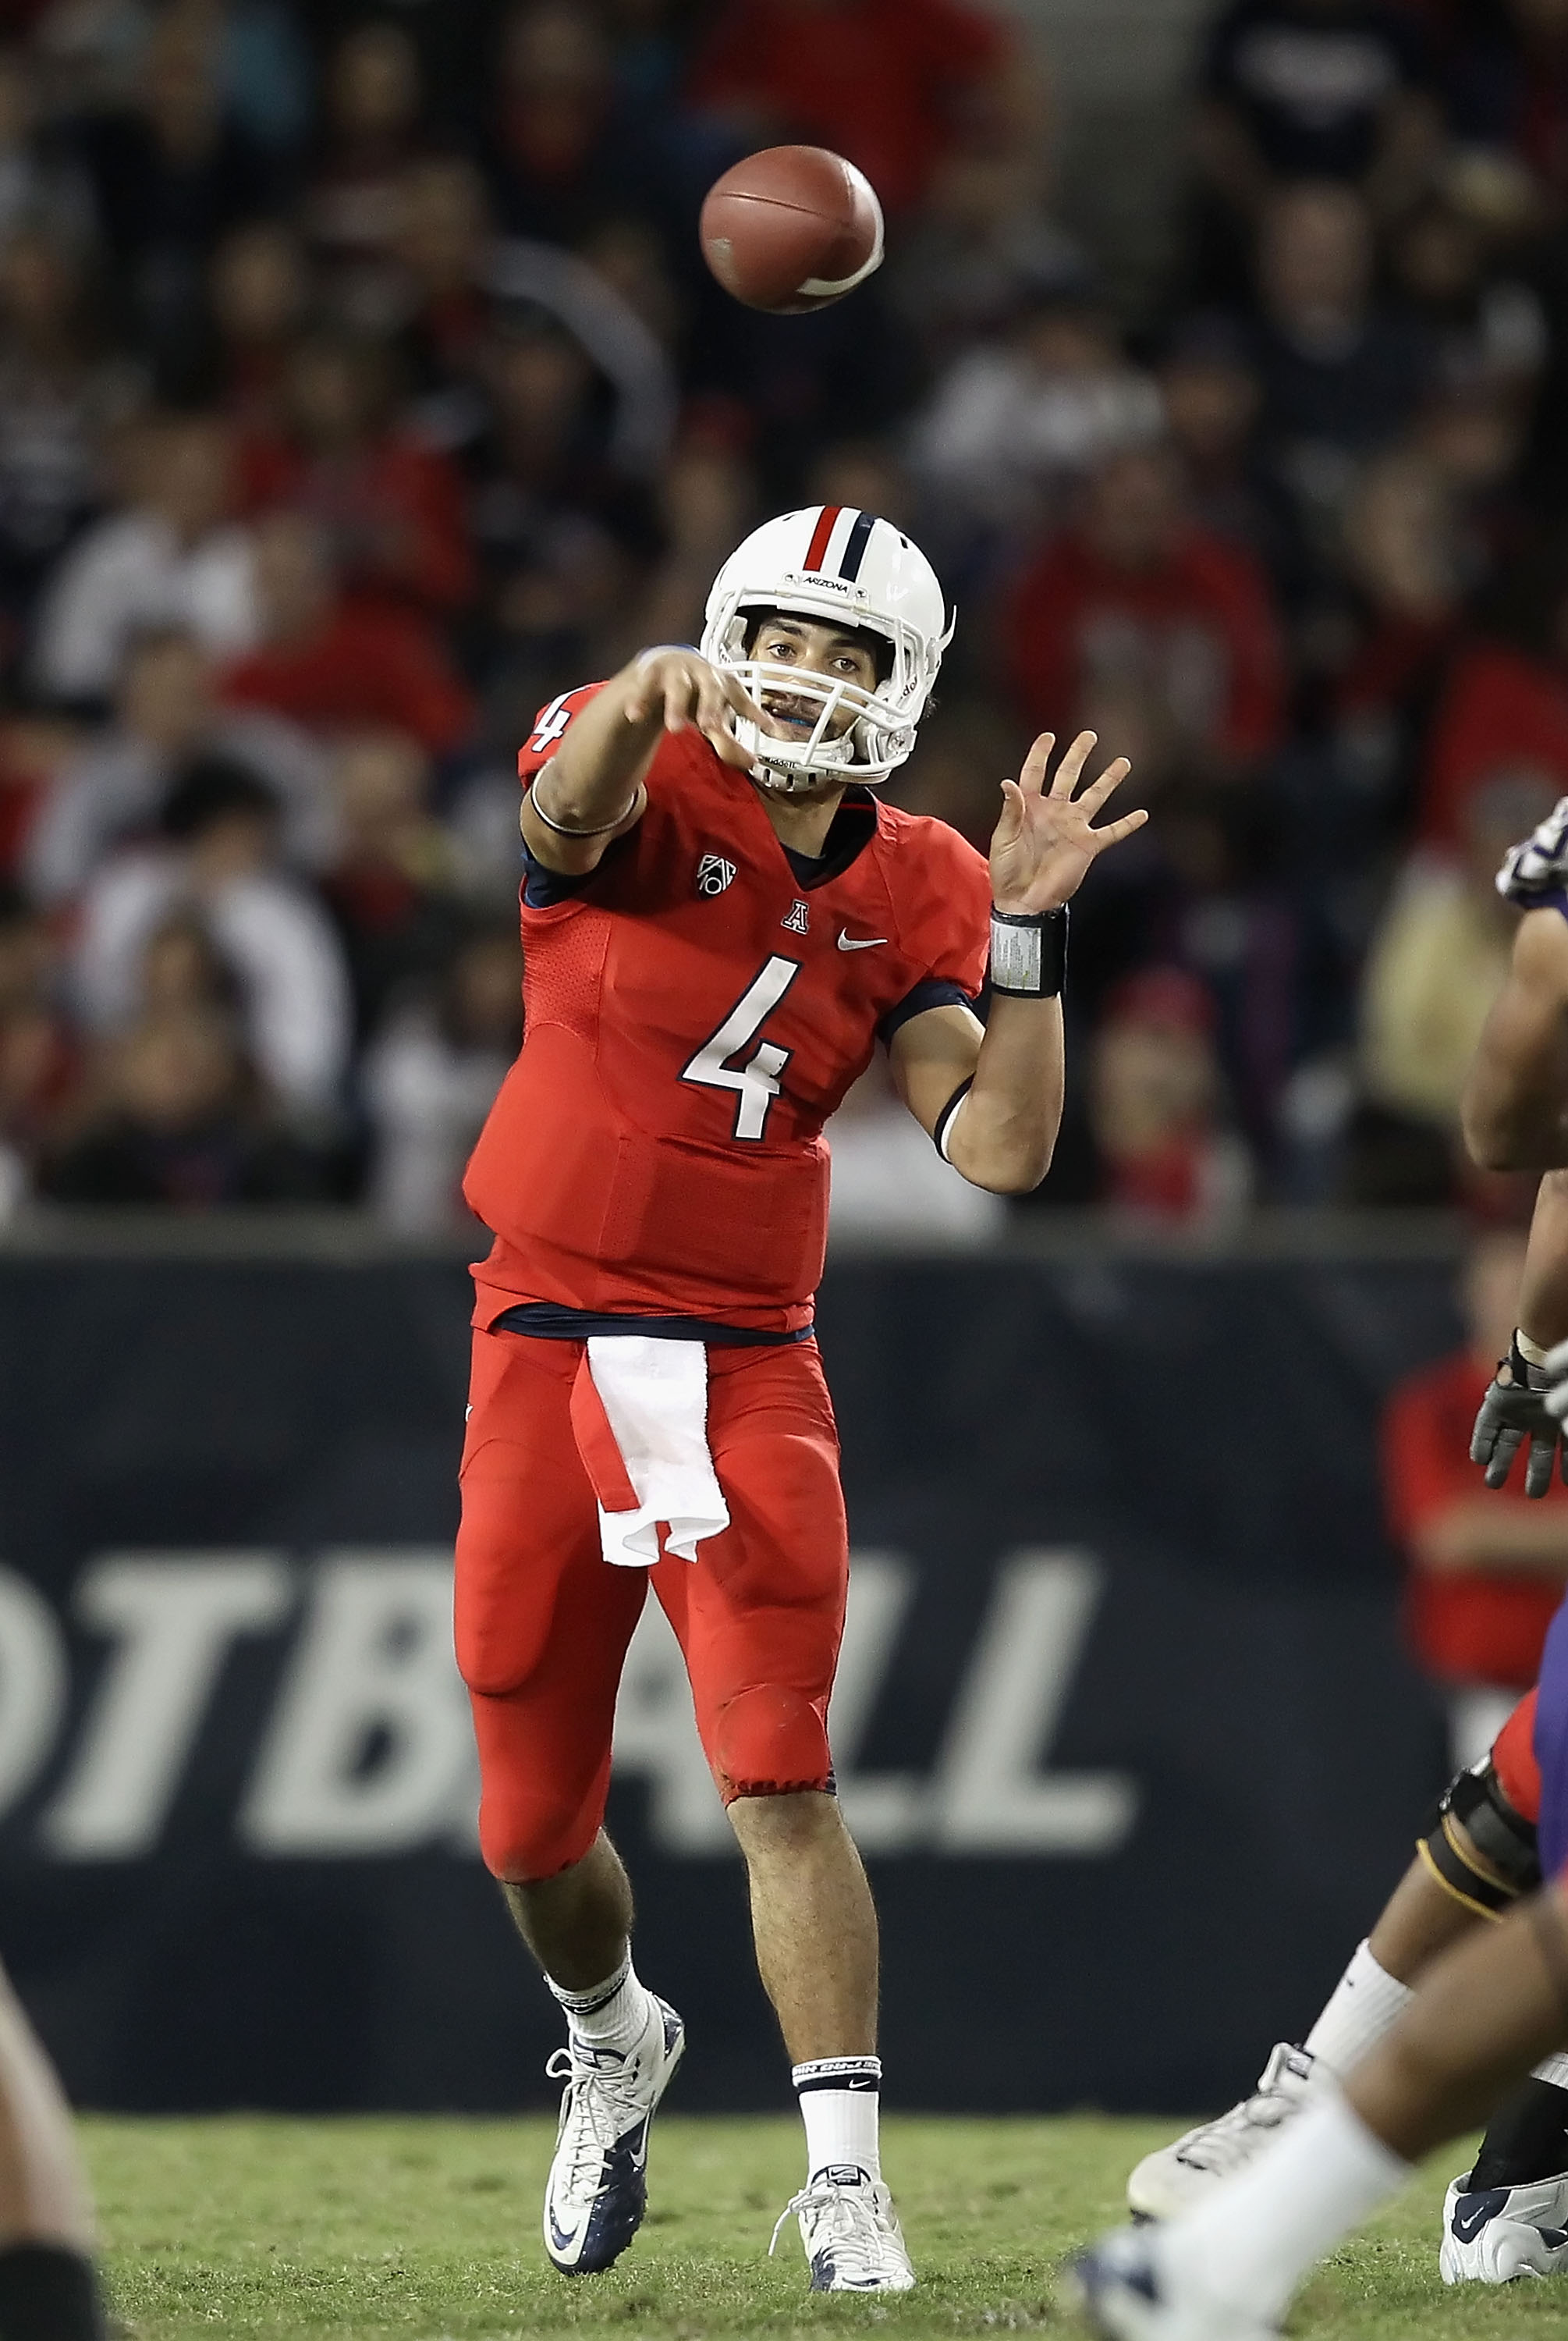 TUCSON, AZ - OCTOBER 23:  Quarterback Matt Scott #4 of the Arizona Wildcats throws a pass during the college football game against the Washington Huskies at Arizona Stadium on October 23, 2010 in Tucson, Arizona.  (Photo by Christian Petersen/Getty Images